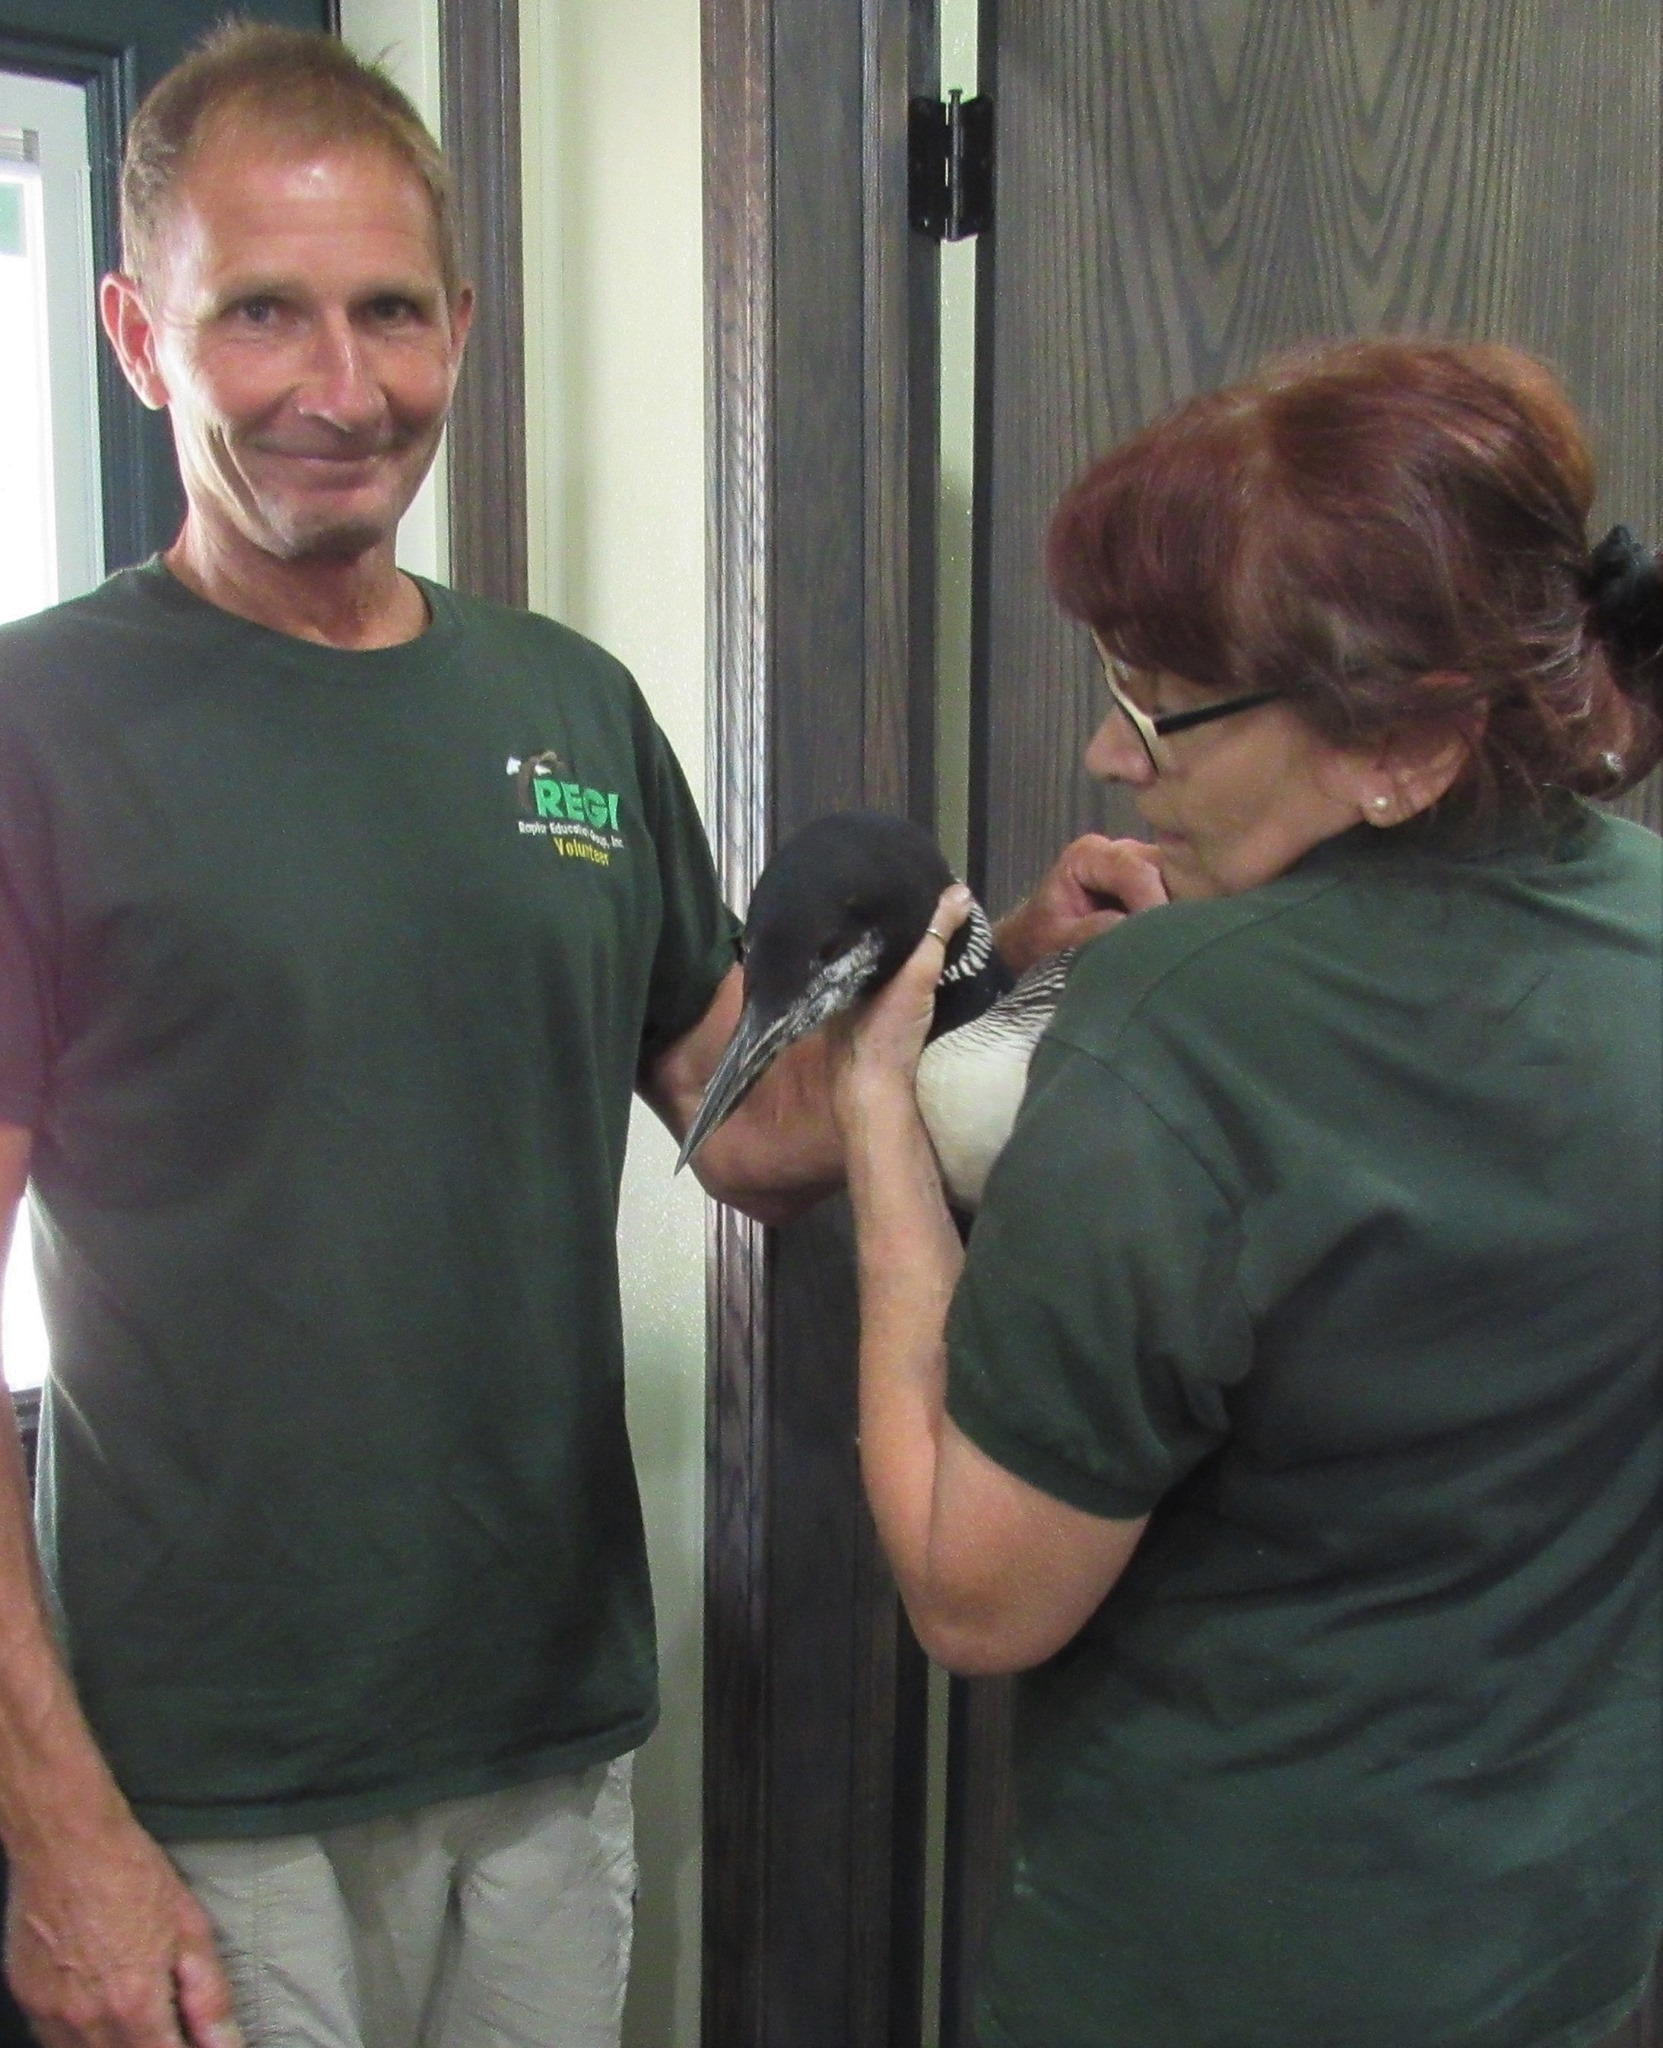 Jeff Konopacky transported an adult loon found in Portage County. We had no idea at this point that she had been shot,